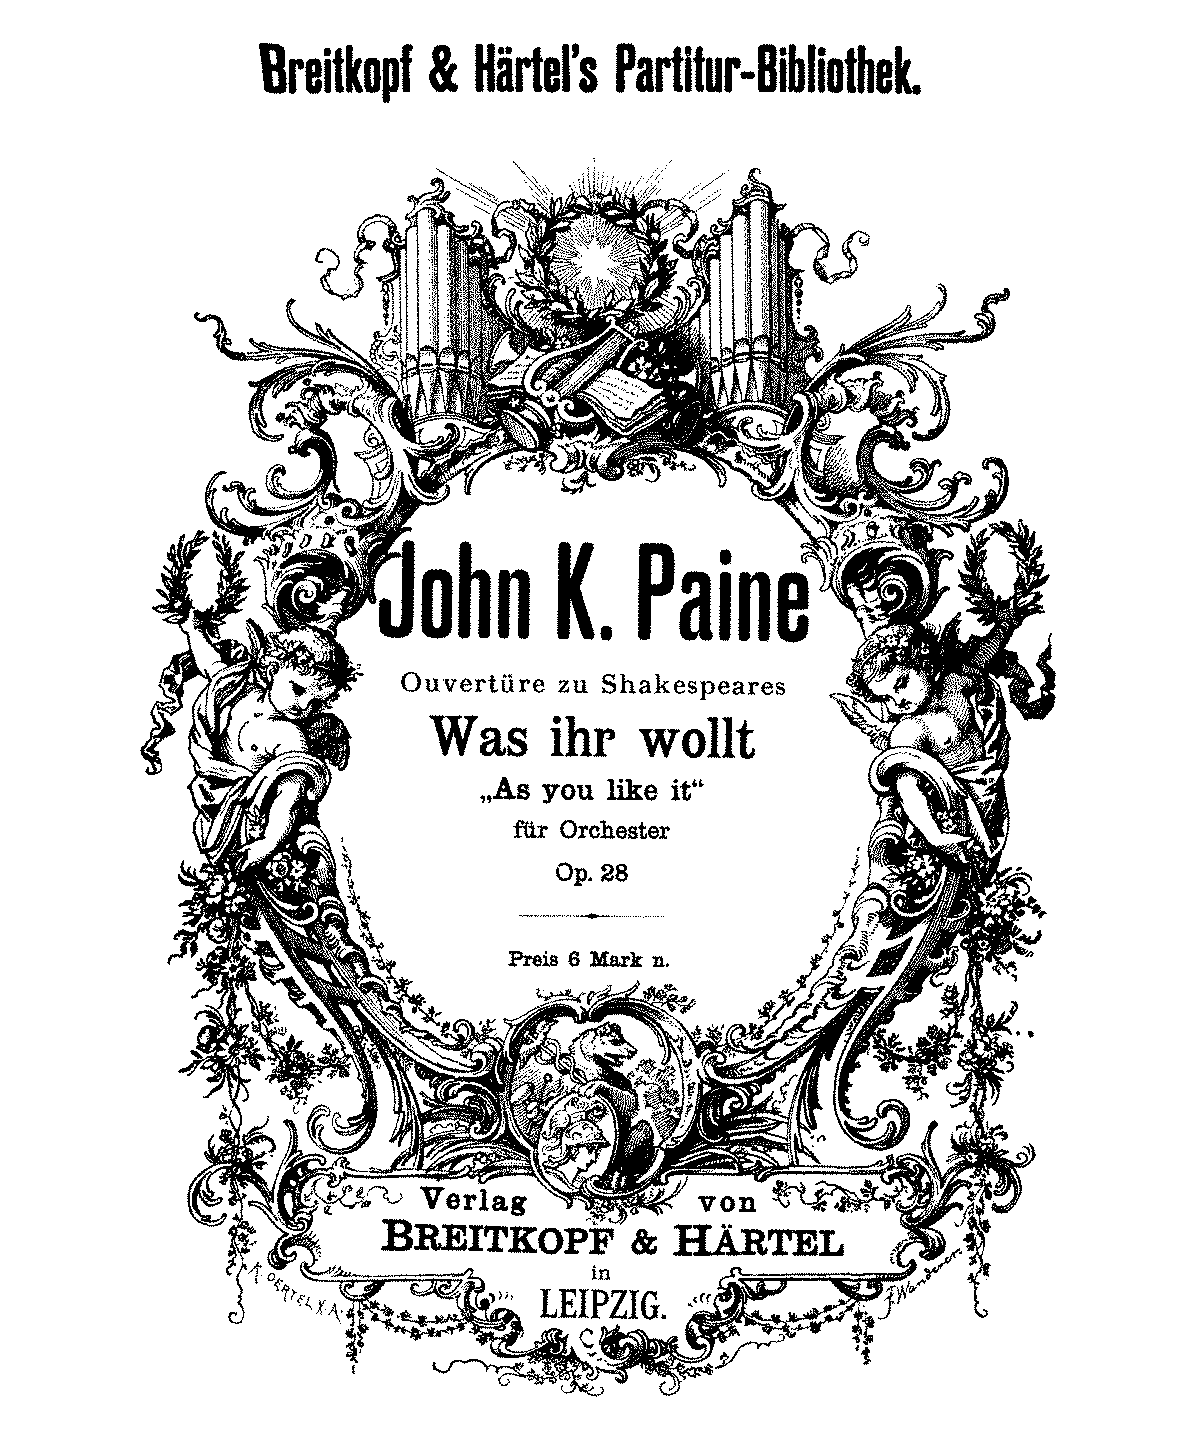 PMLP146289-JKPaine As You Like It Overture Cover.pdf